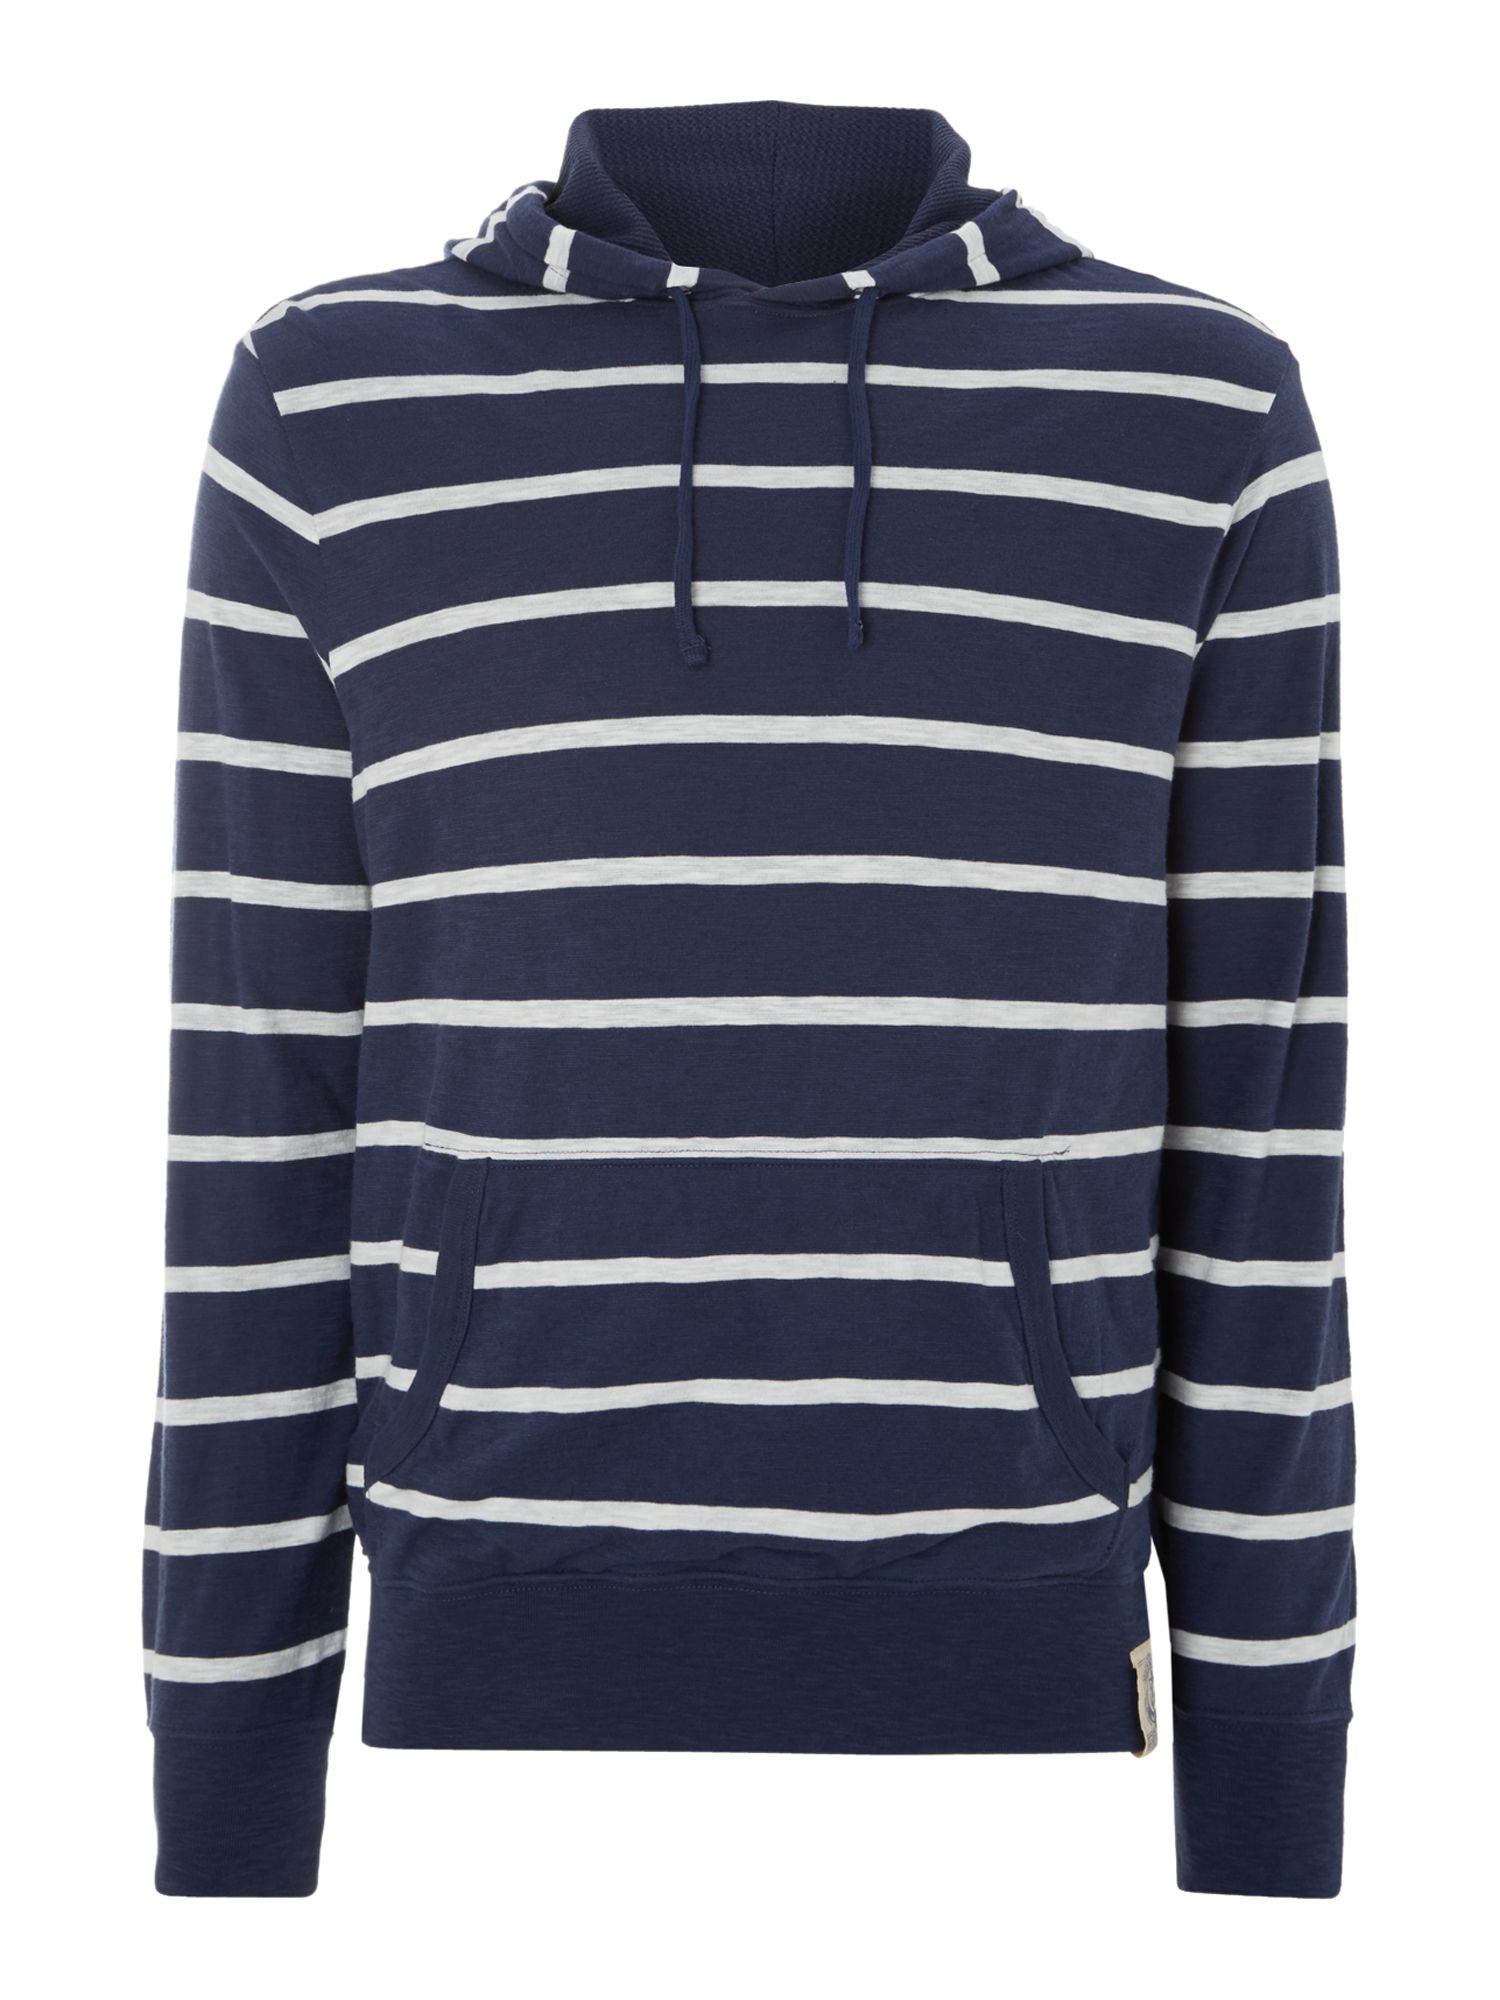 Striped hoody